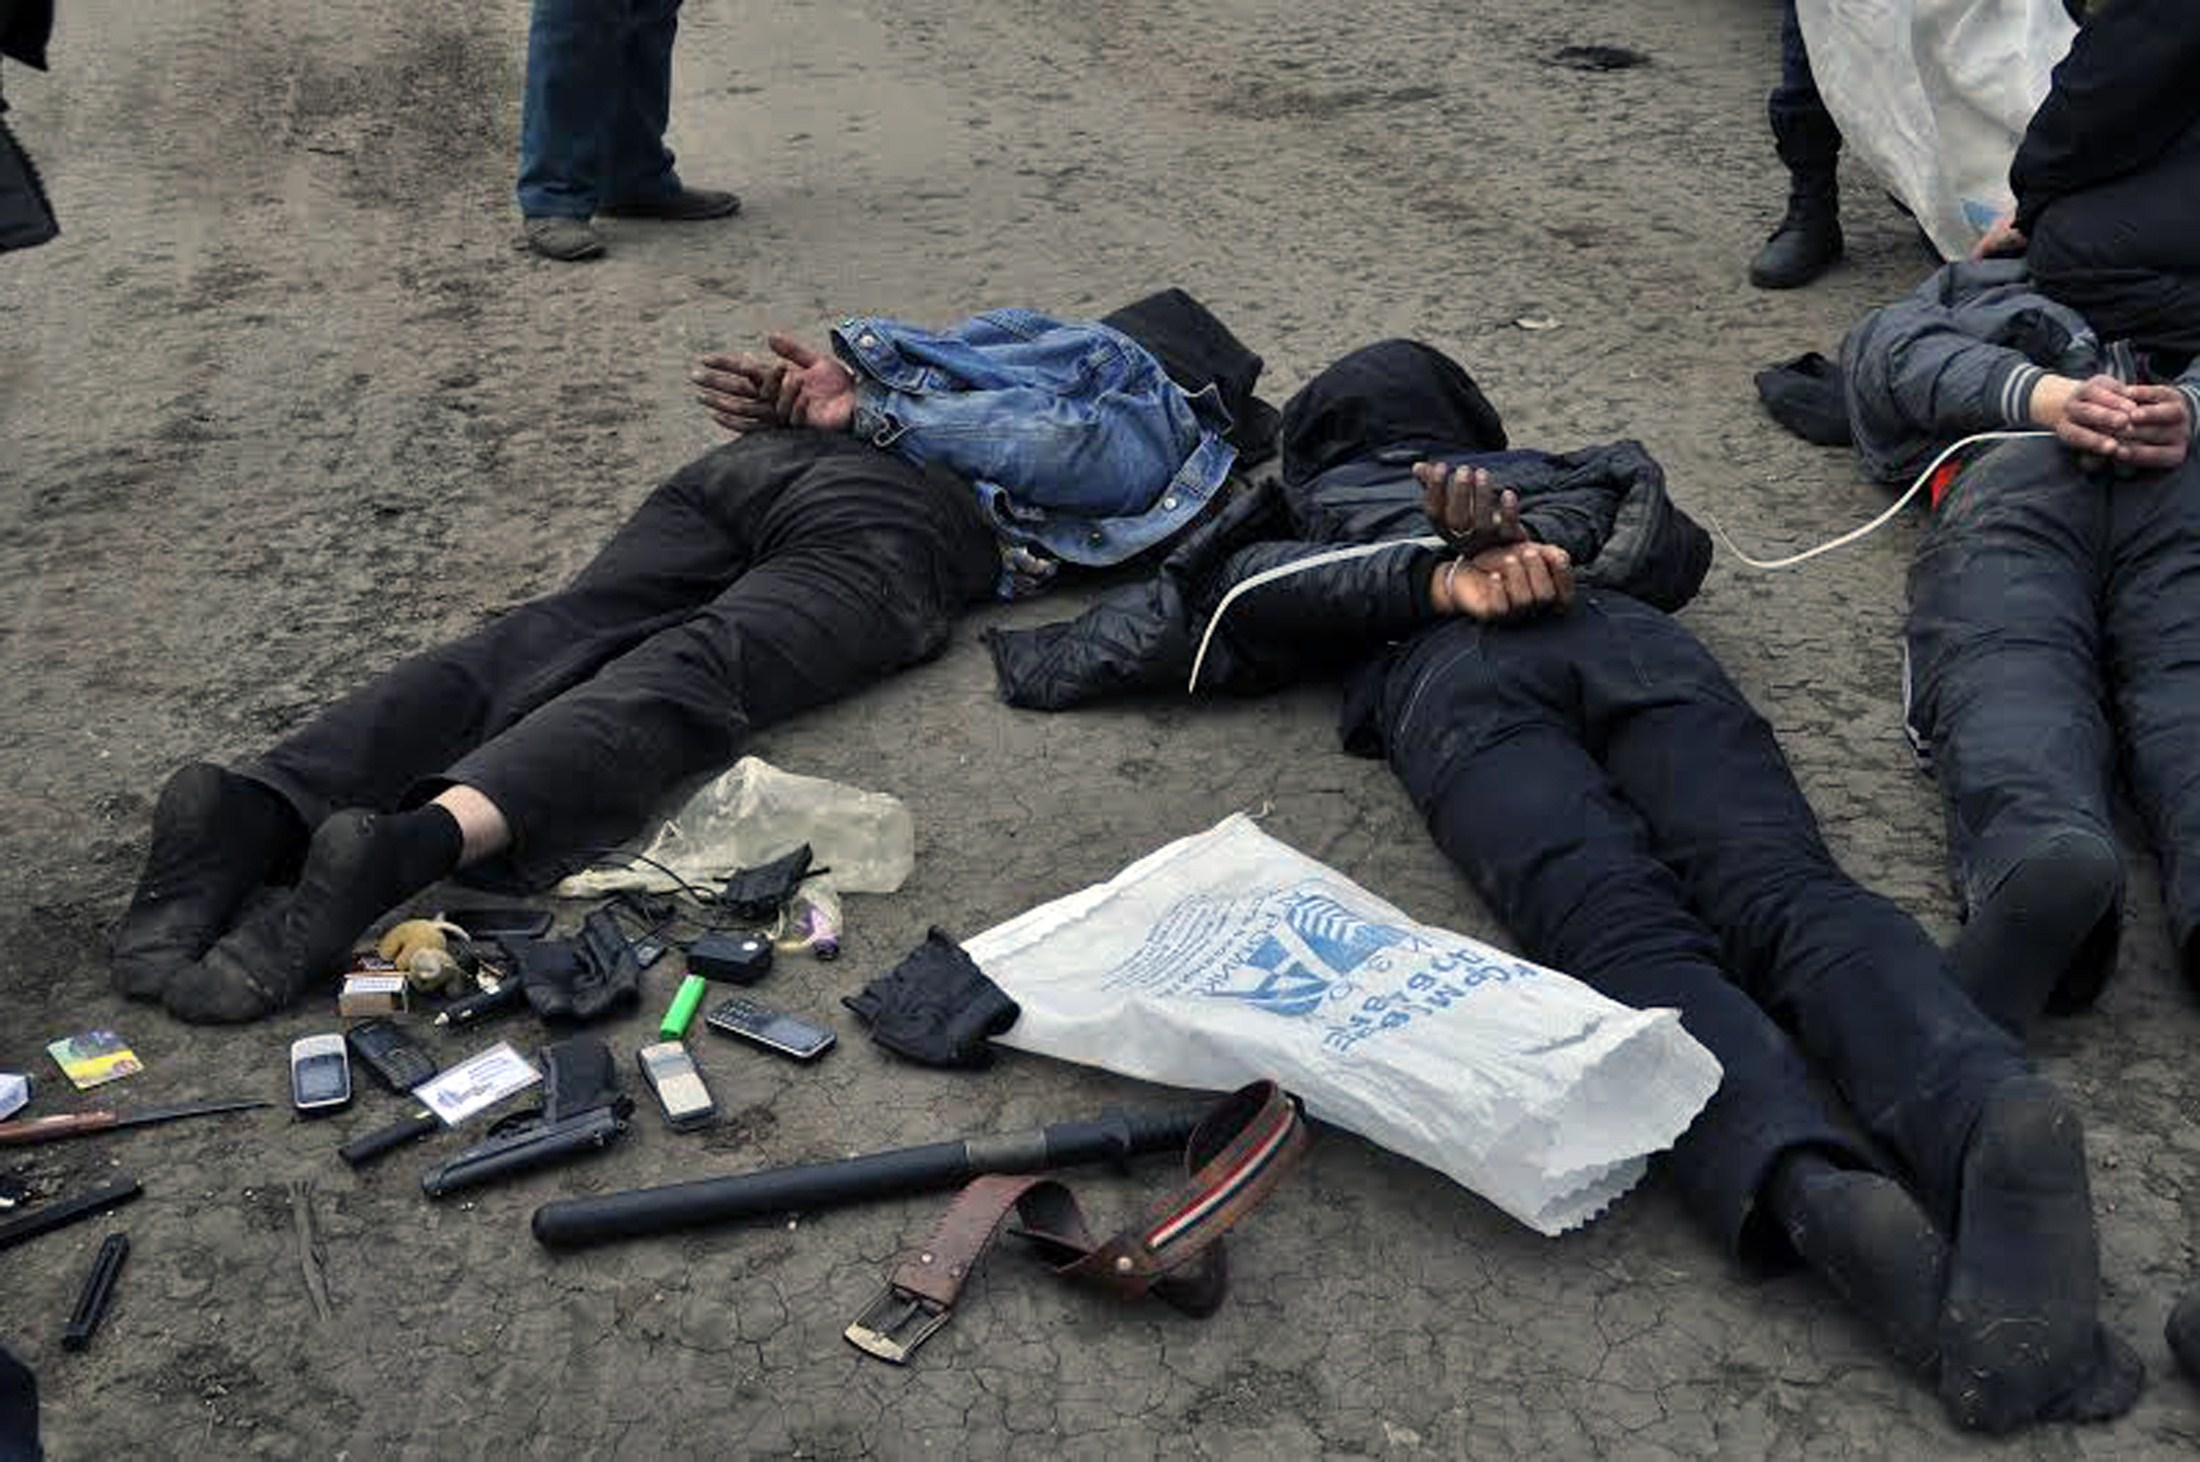 Four pro-Russian militants lay on the ground with hands tied after being arrested on suspicion of the implementation of MANPADS (Man-portable air-defense systems ) shots to a helicopter of the Ukrainian forces on May, 2, 2014 at a checkpoint near Slavyansk . Ukraine's defence ministry on Thursday raised the toll during an assault on the rebel-held town of Slavyansk to two of its helicopters shot down and two servicemen killed. Authorities say the pro-Russian insurgents used shoulder-launched rockets to bring down the two Mi-24 helicopters. Earlier, the interior minister said one of those killed was a helicopter pilot. Photo by STR/AFP/Getty Images